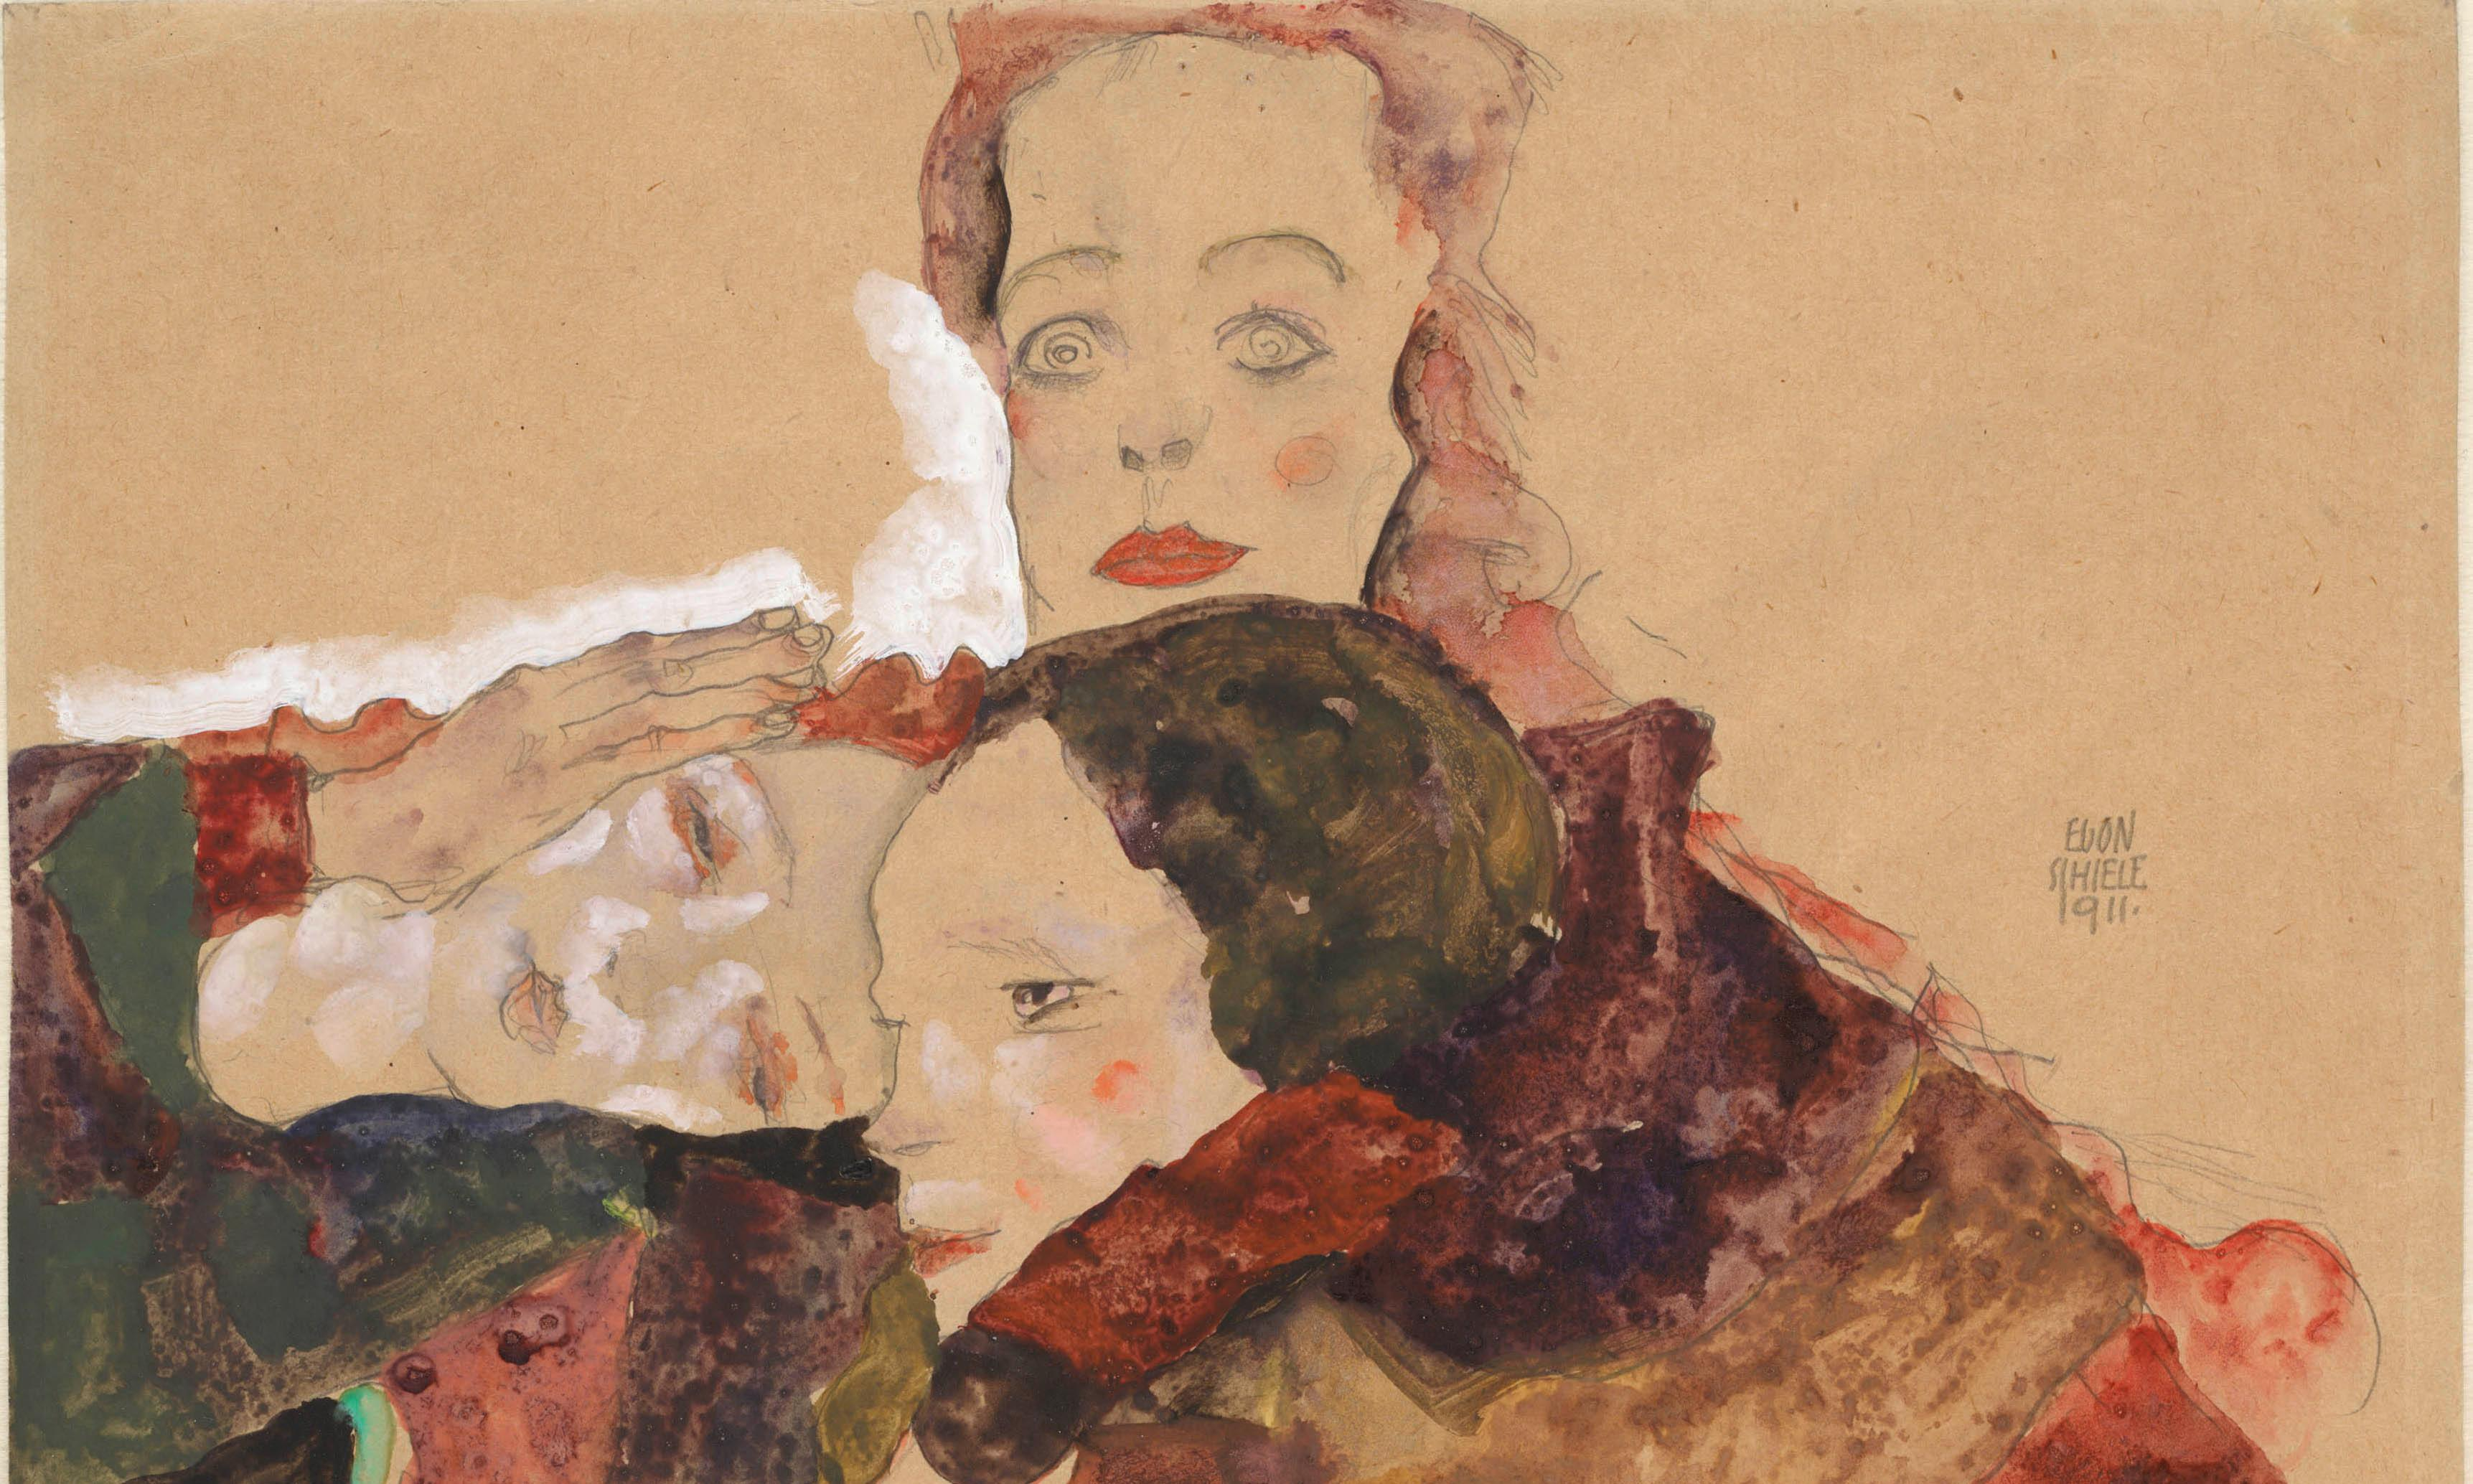 Klimt / Schiele review – the double act who saw the profound in the pornographic